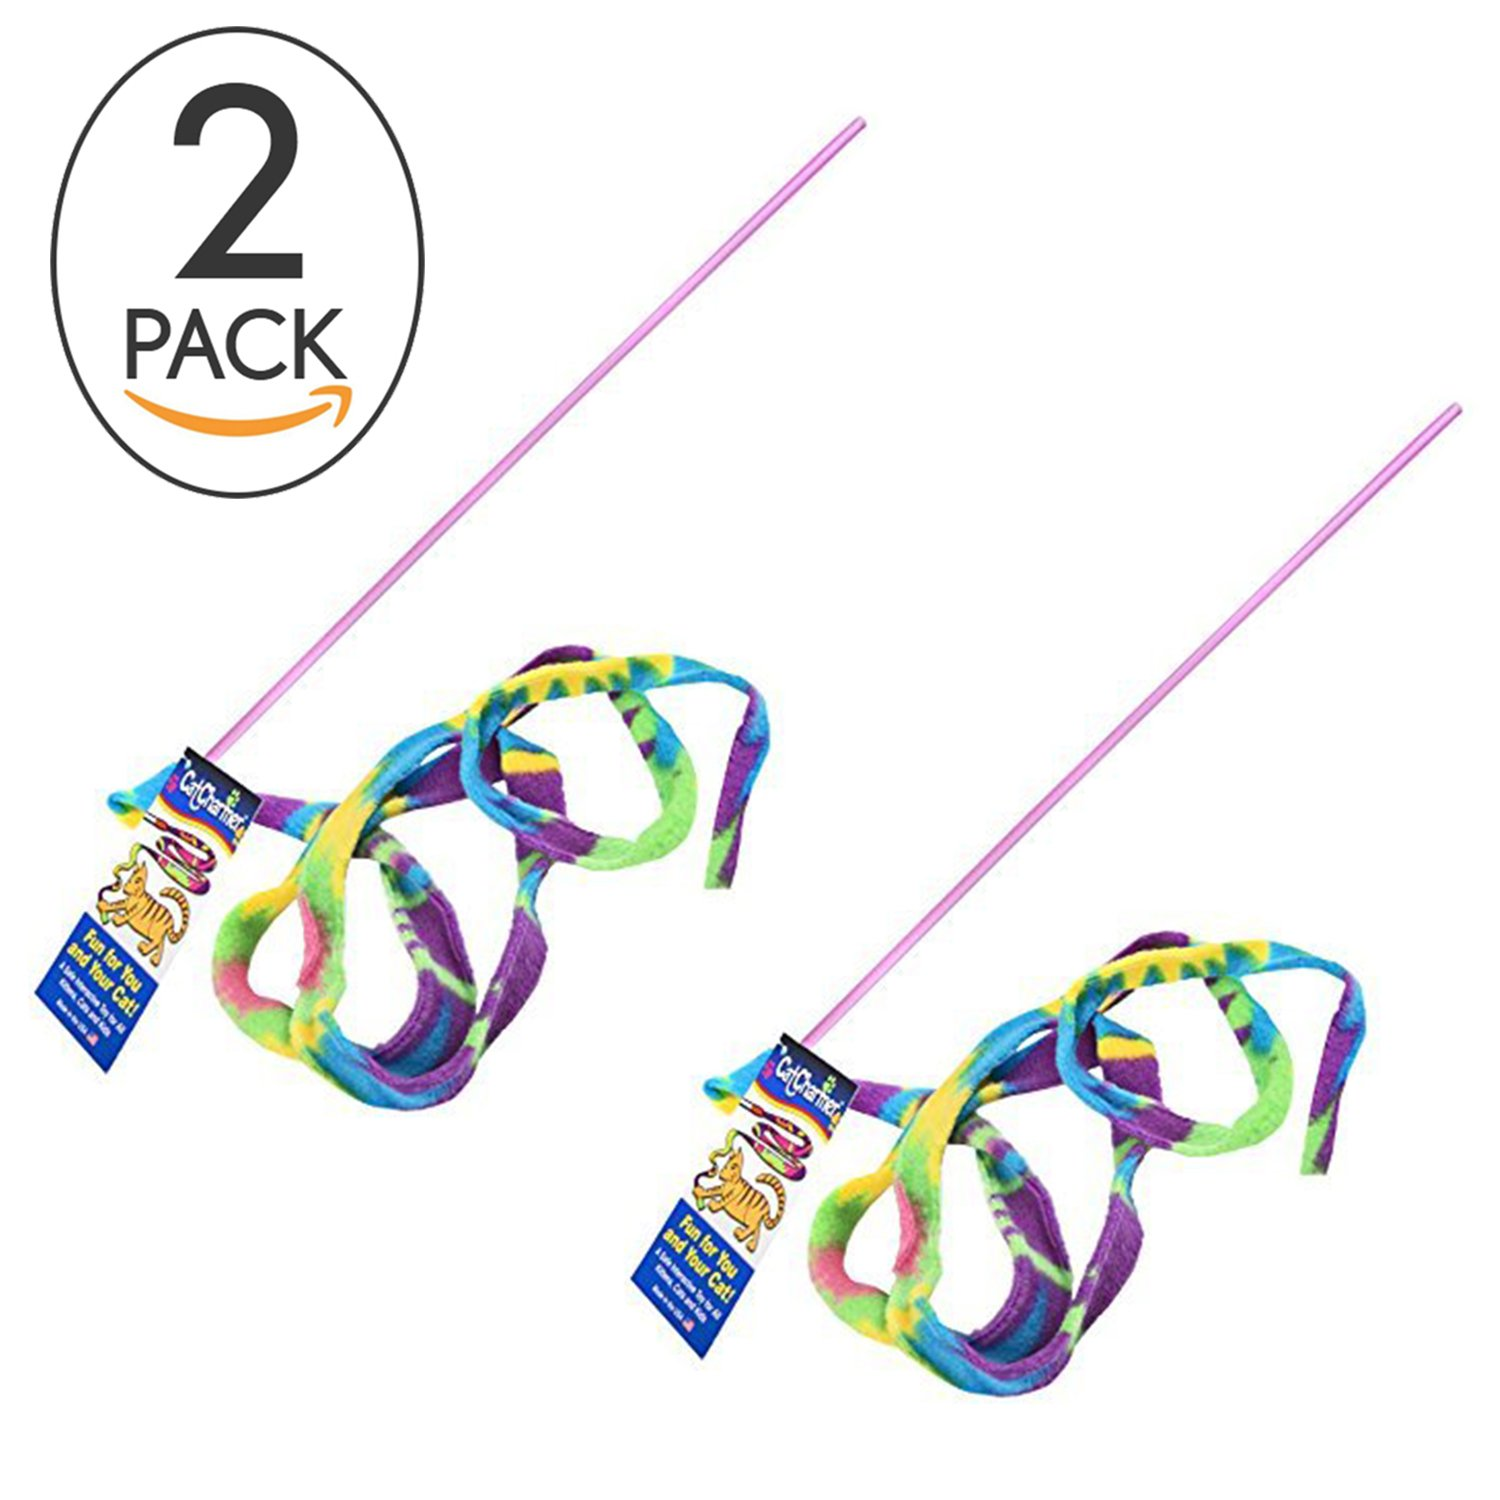 Cat Dancer Cat Toy Cat Charmer Safe Wand Teaser Colorful Fabric Ribbon Safe Flexible Exercise Toy 2 Pack